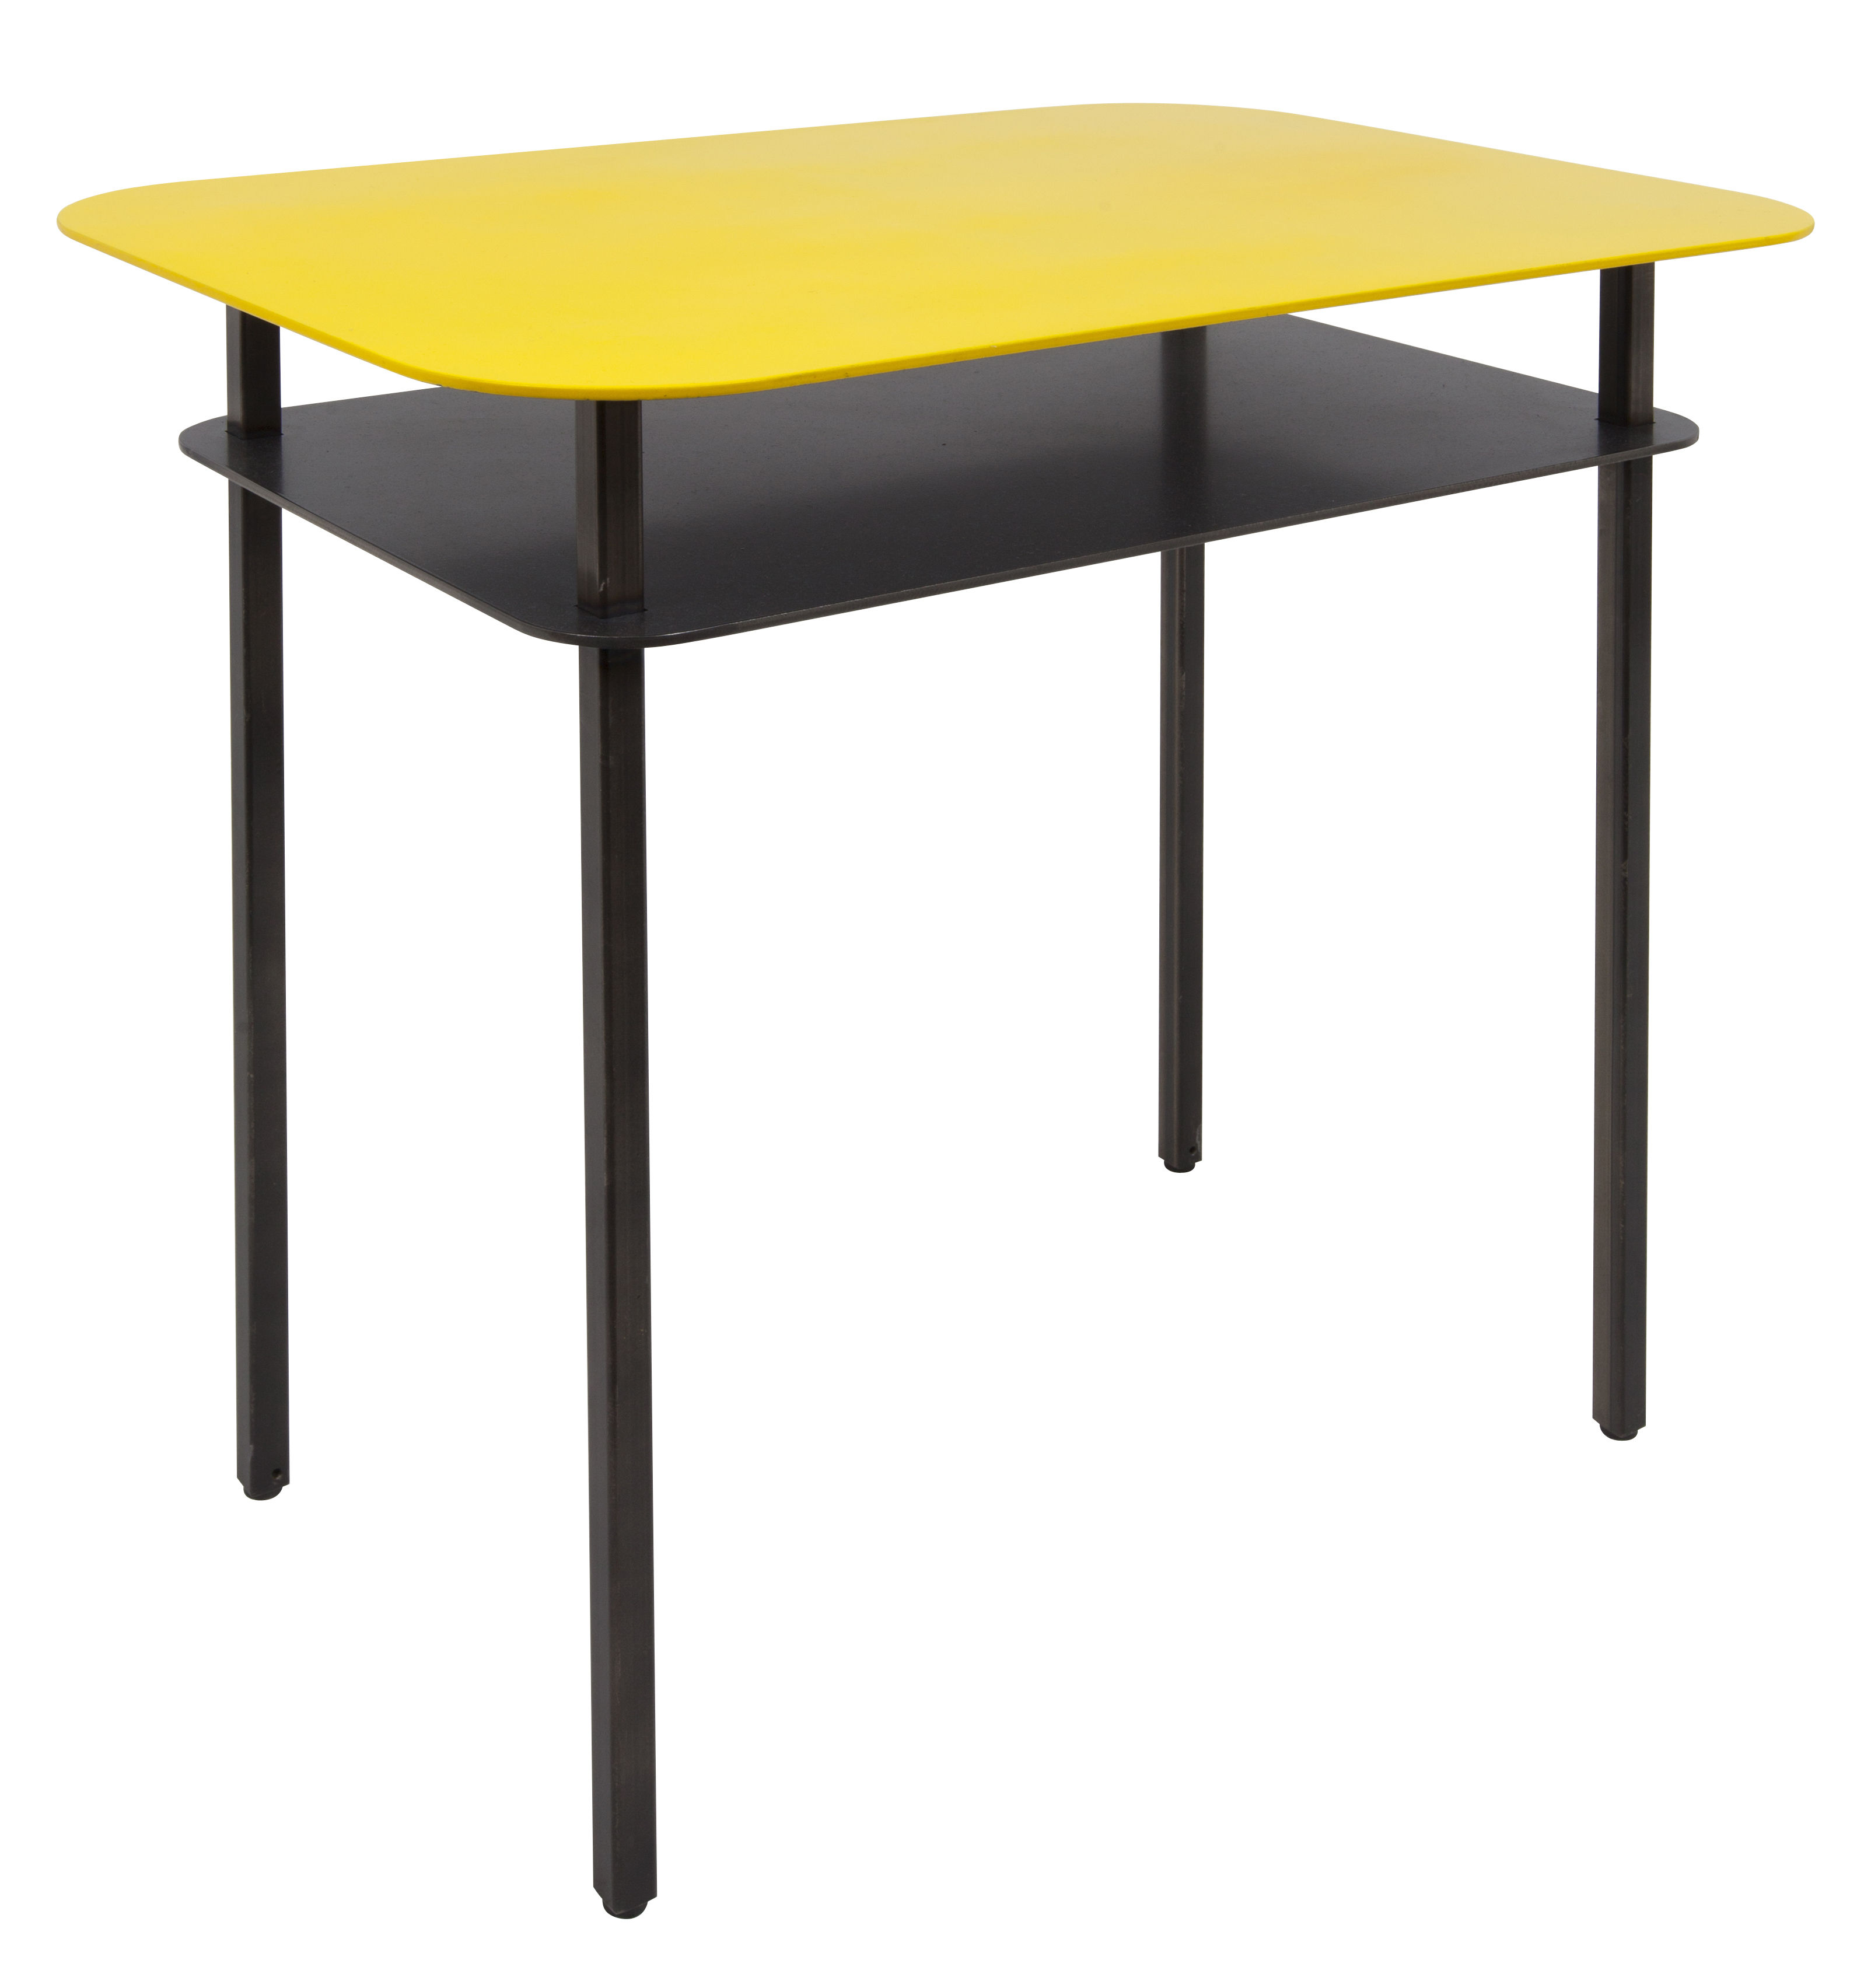 Furniture - Coffee Tables - Kara End table - Bedside table - 60 x 44 cm by Maison Sarah Lavoine - Yellow - Thermolacquered raw steel